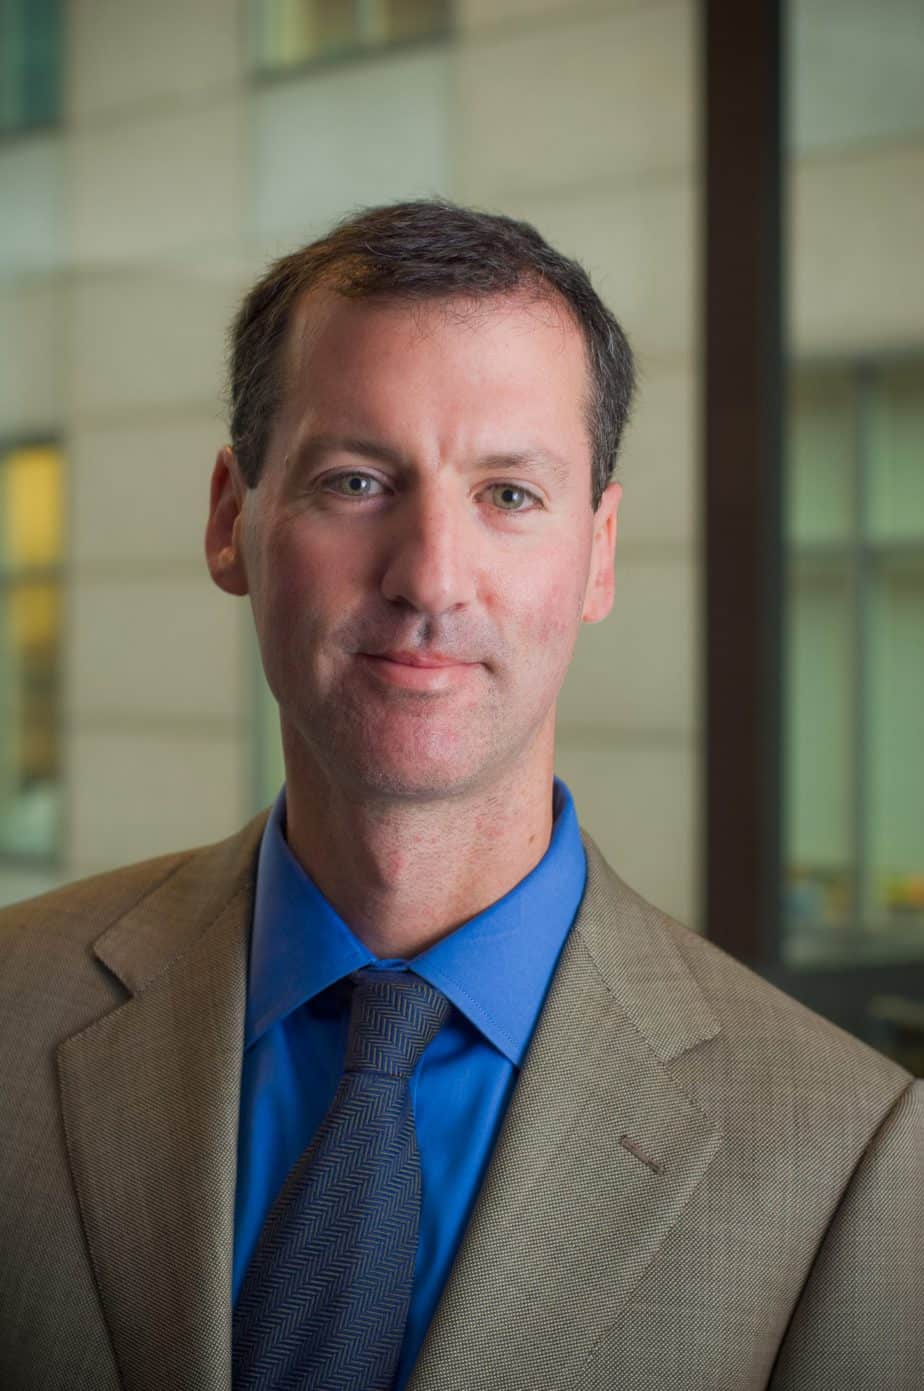 Ian Krop MD, Ph.D, Associate chief of the Division of Breast Oncology at Dana-Farber Cancer Institute. Photo courtesy: 2019 SABCS/AACR